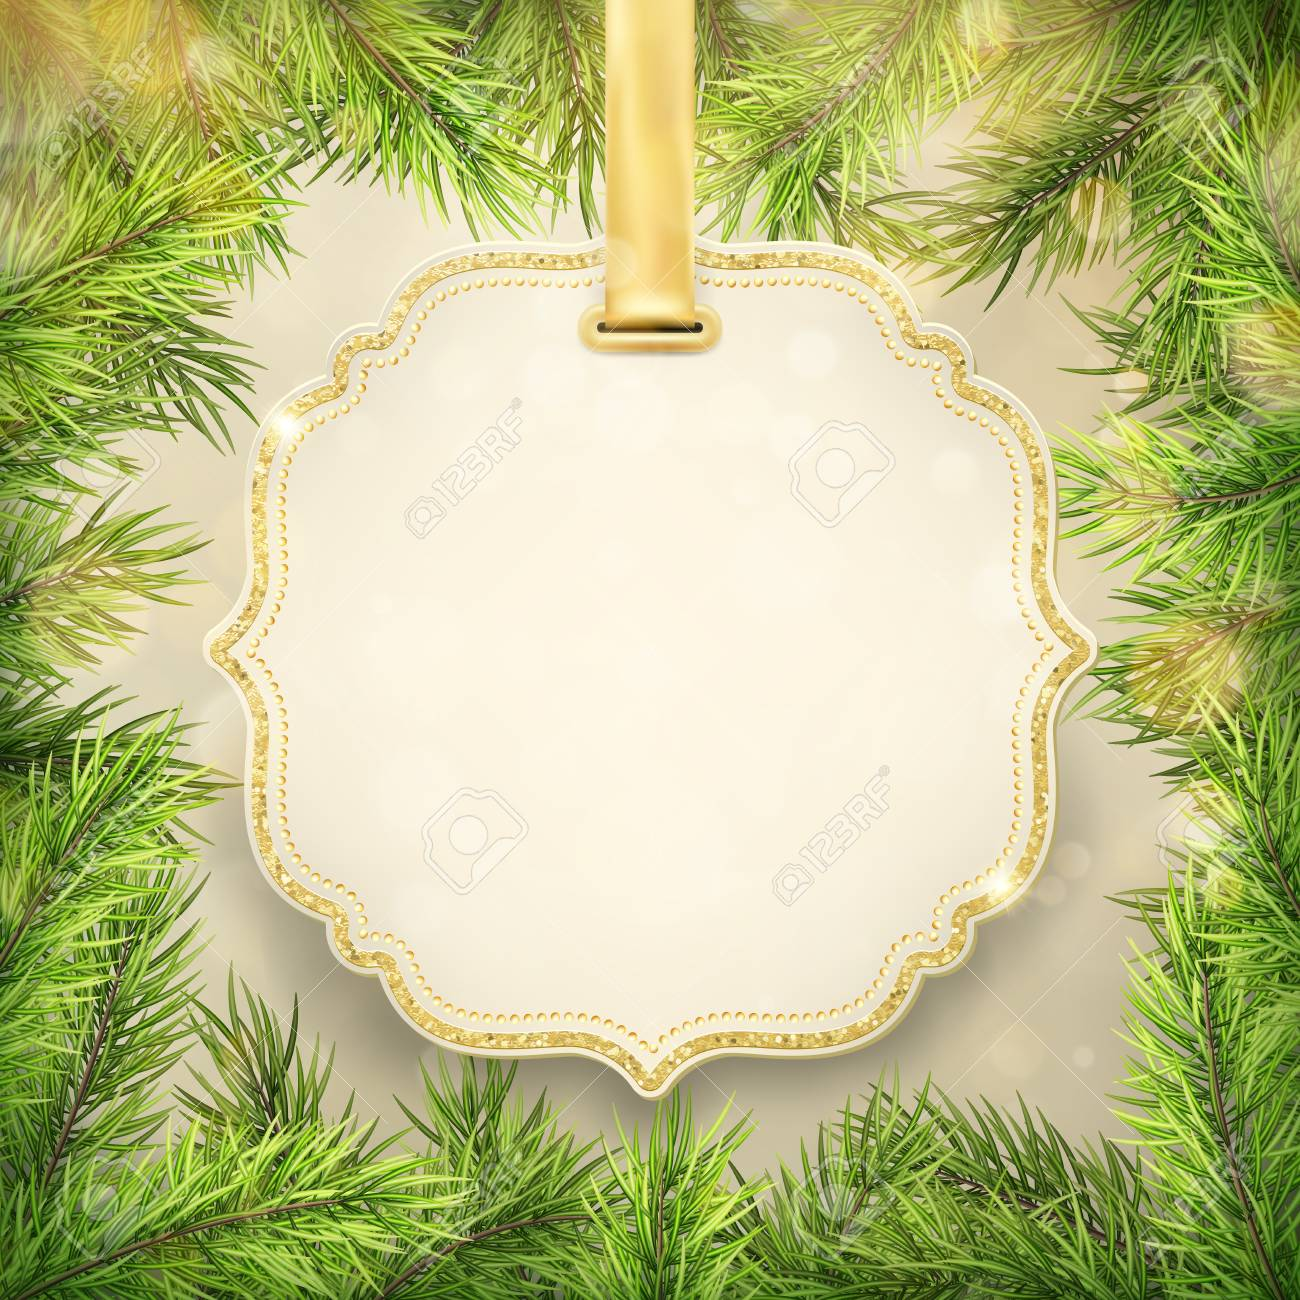 Christmas Tree Branches Frame With Label Tag Frame Decoration Royalty Free Cliparts Vectors And Stock Illustration Image 115279368